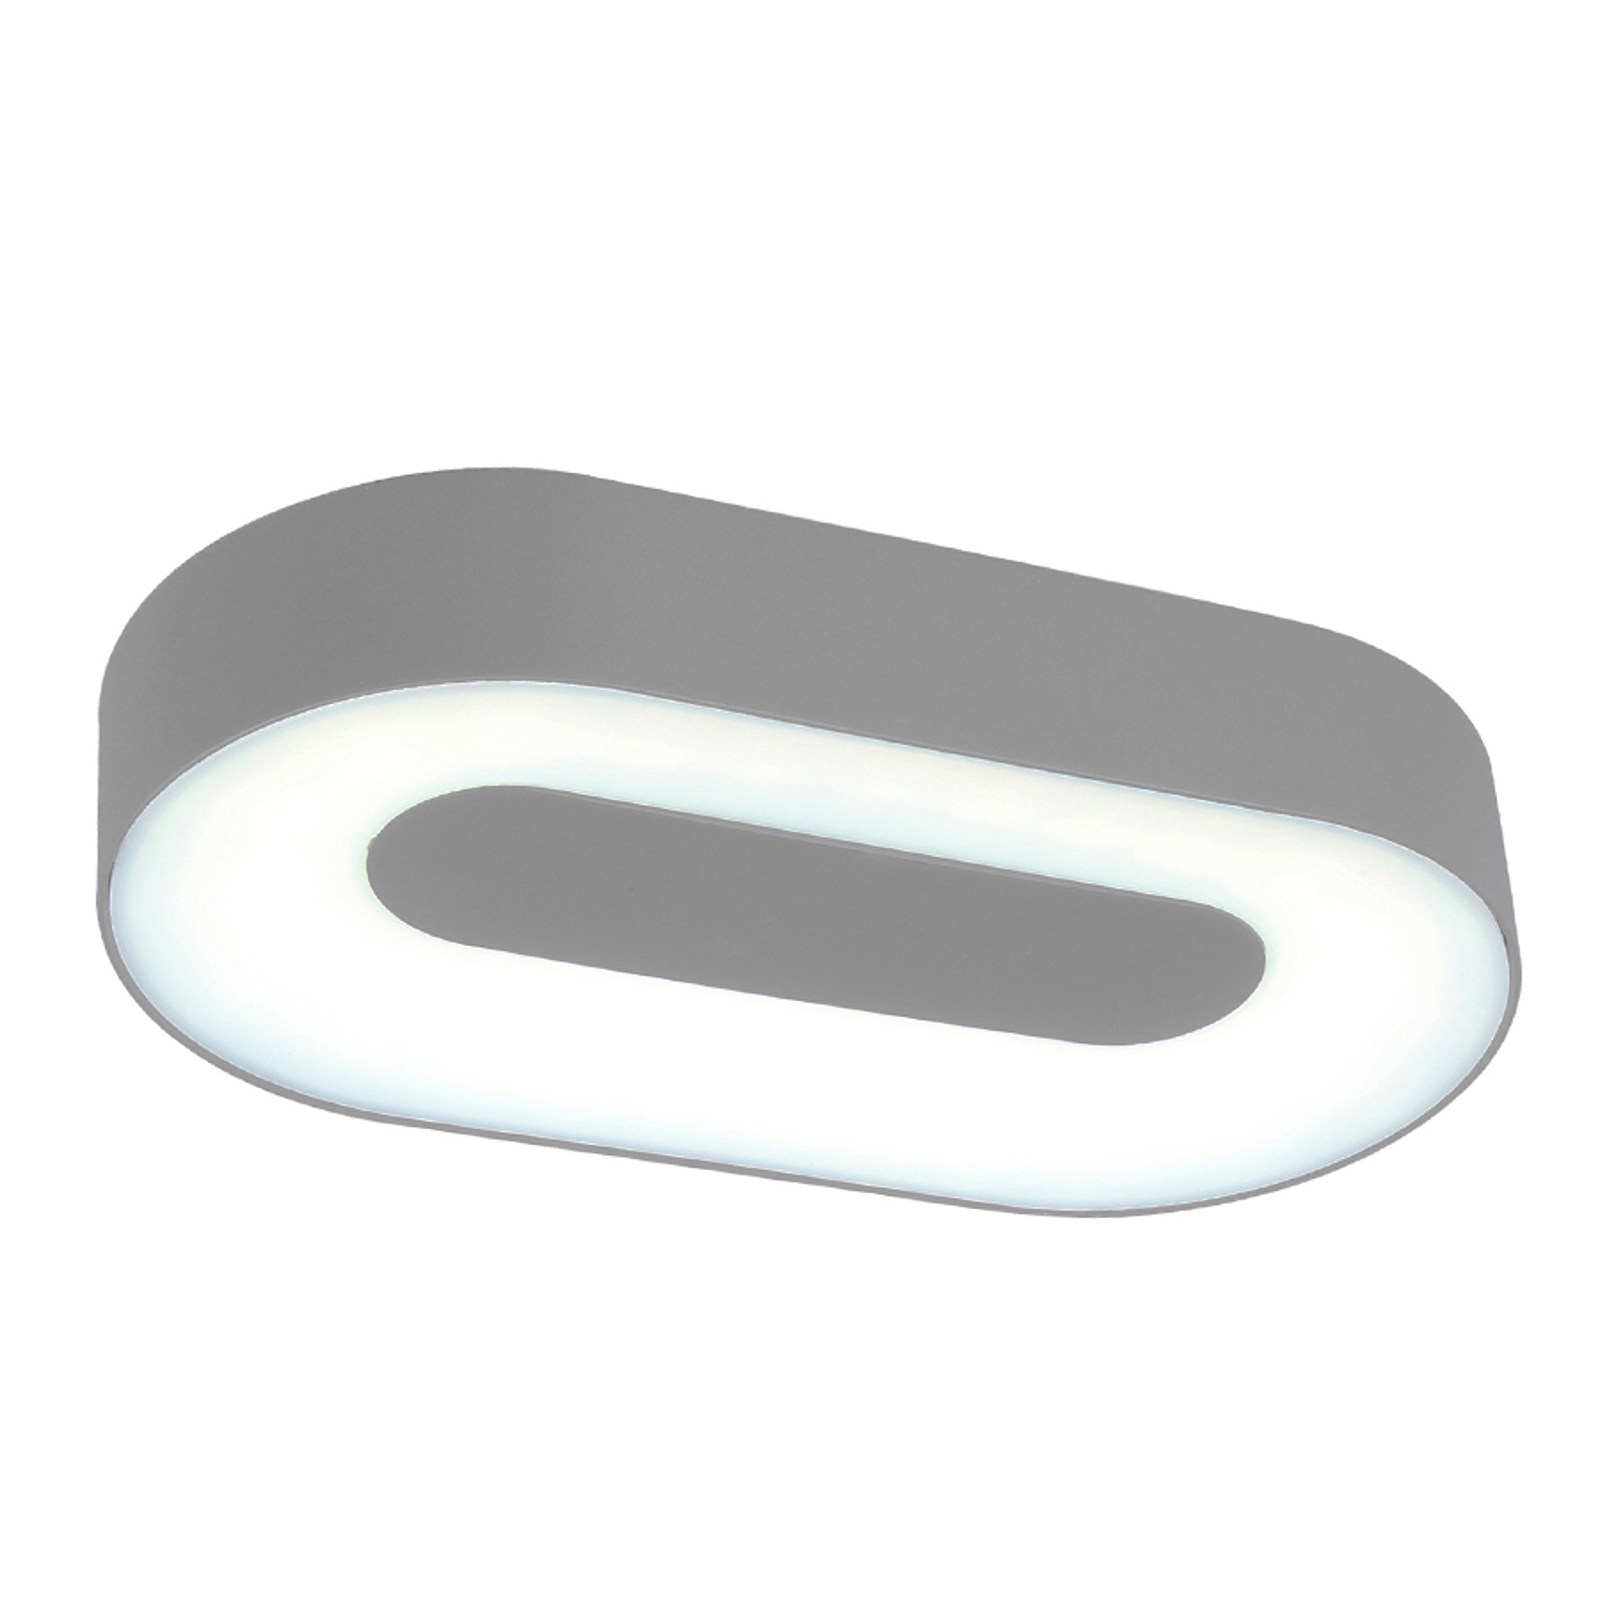 Oval Ublo LED wall light for outdoor areas_3006232_1